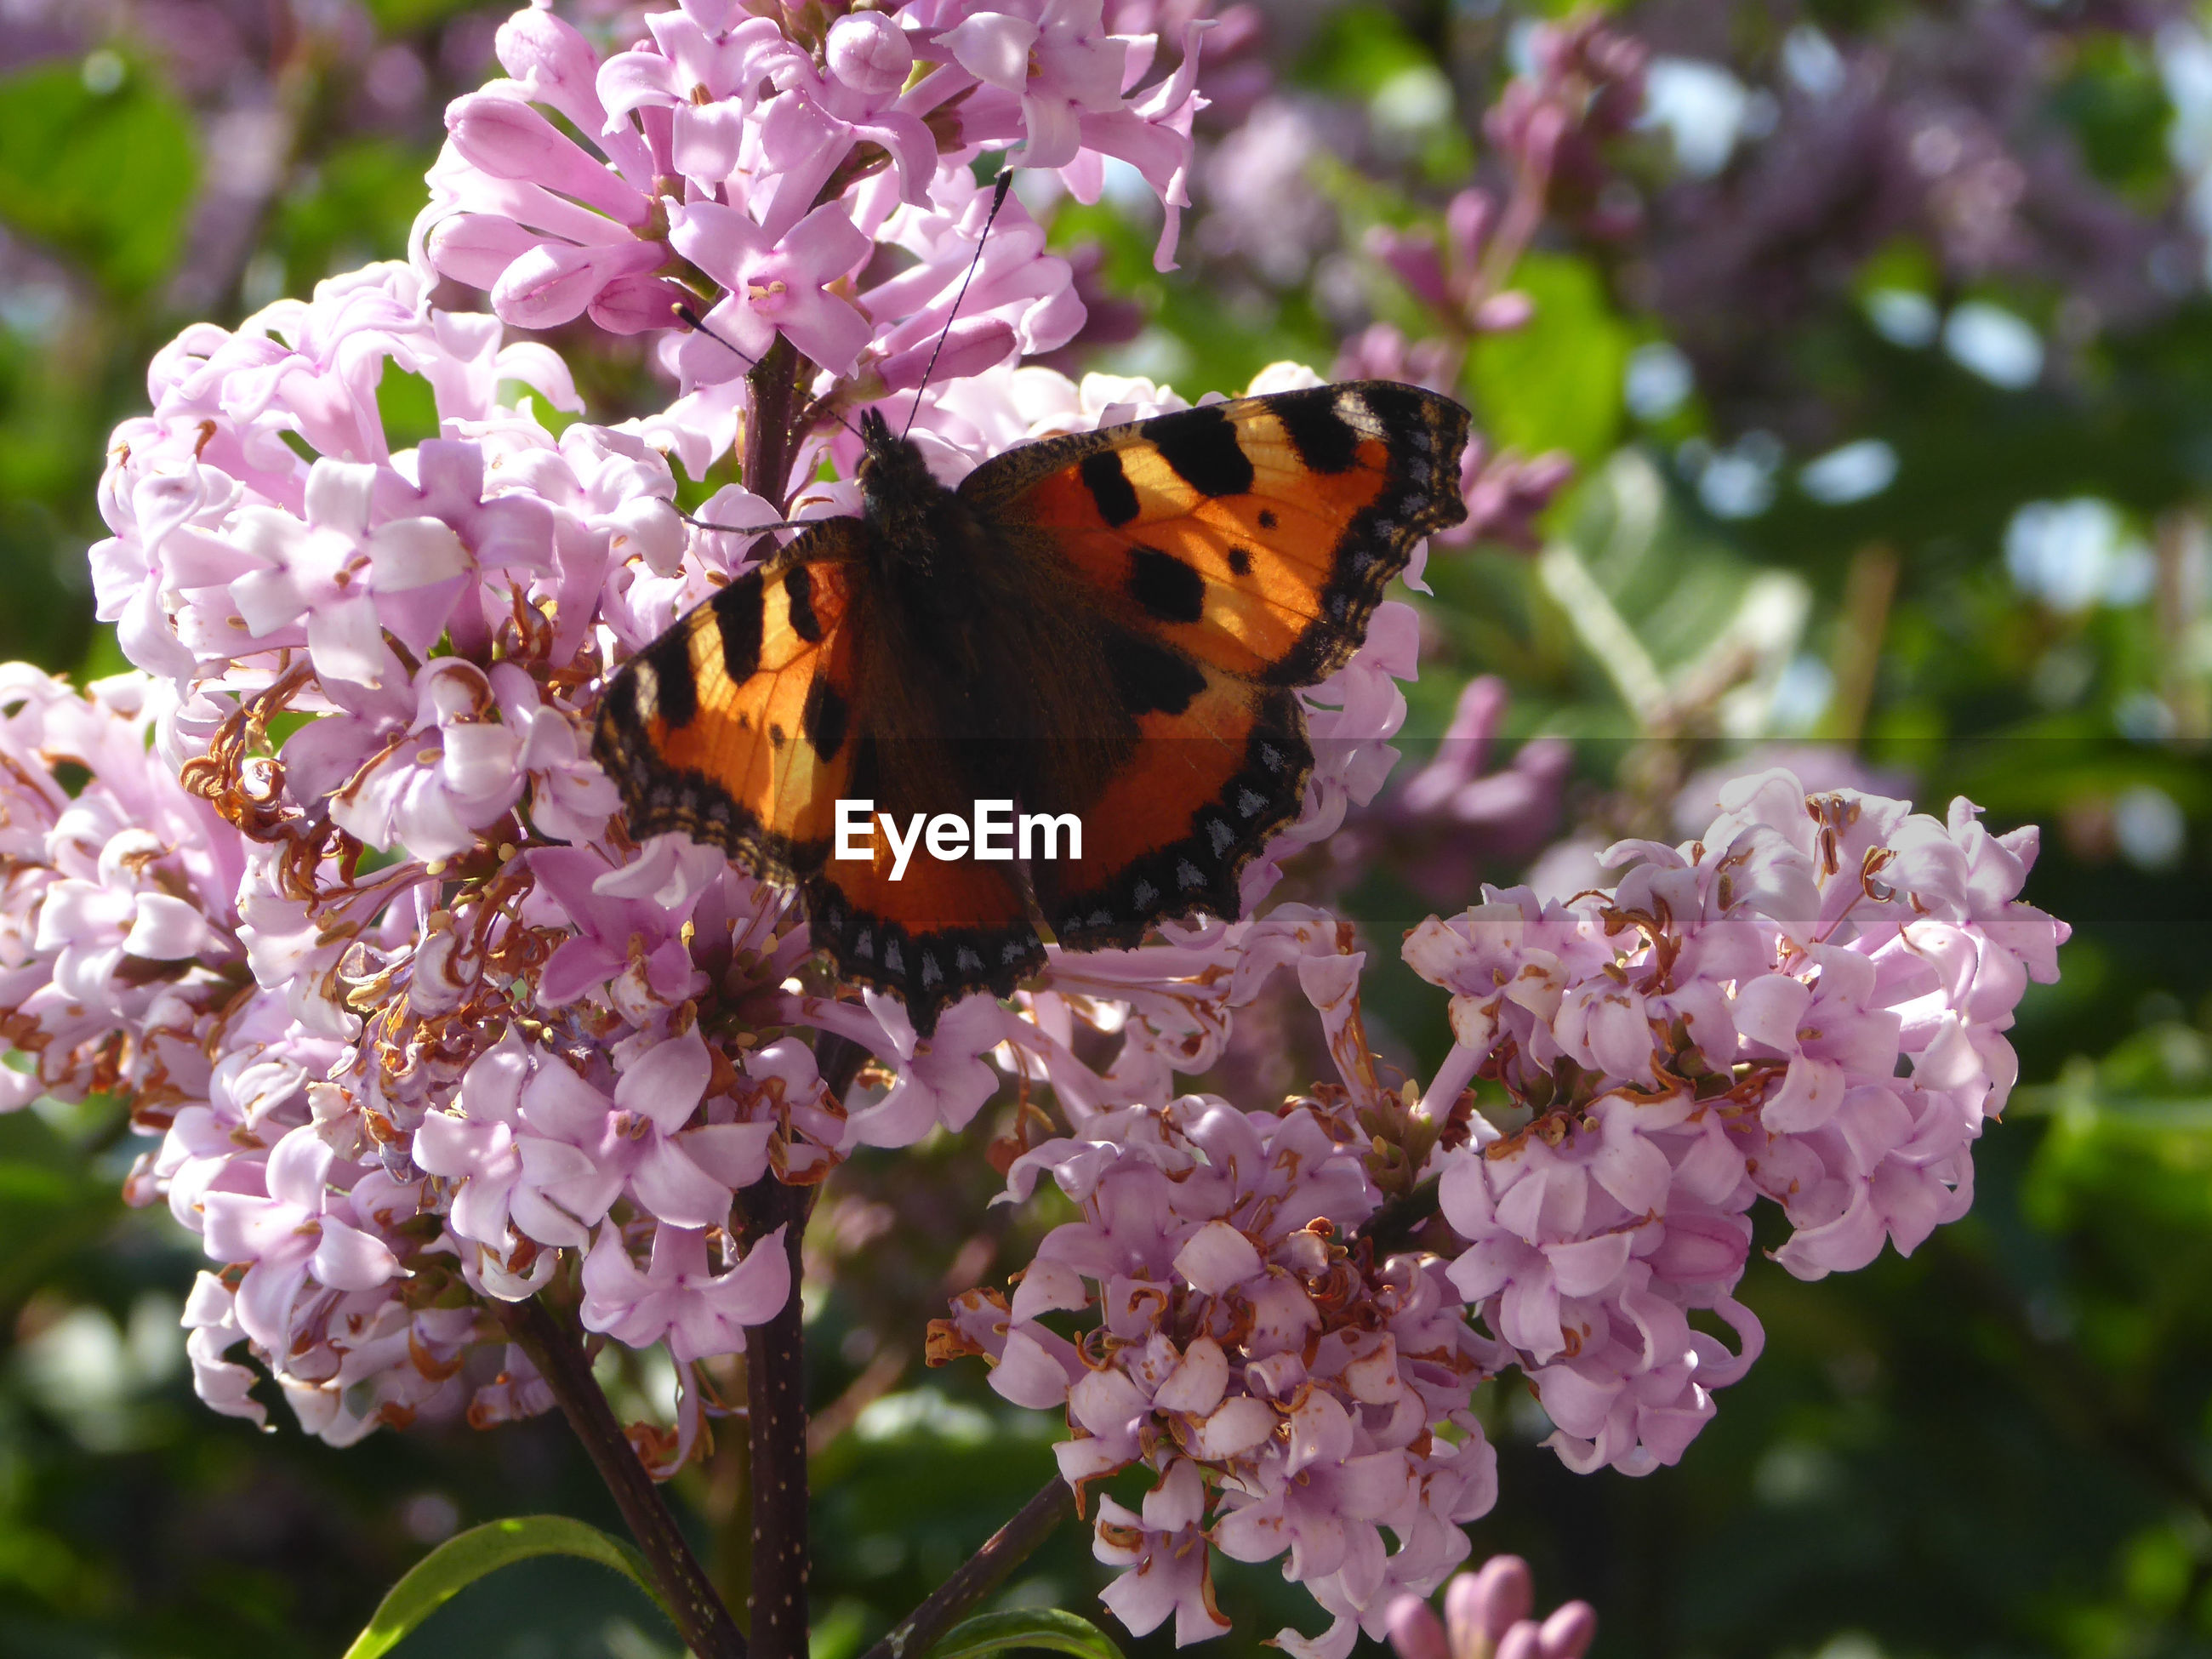 CLOSE-UP OF BUTTERFLY ON PINK FLOWERING PLANT